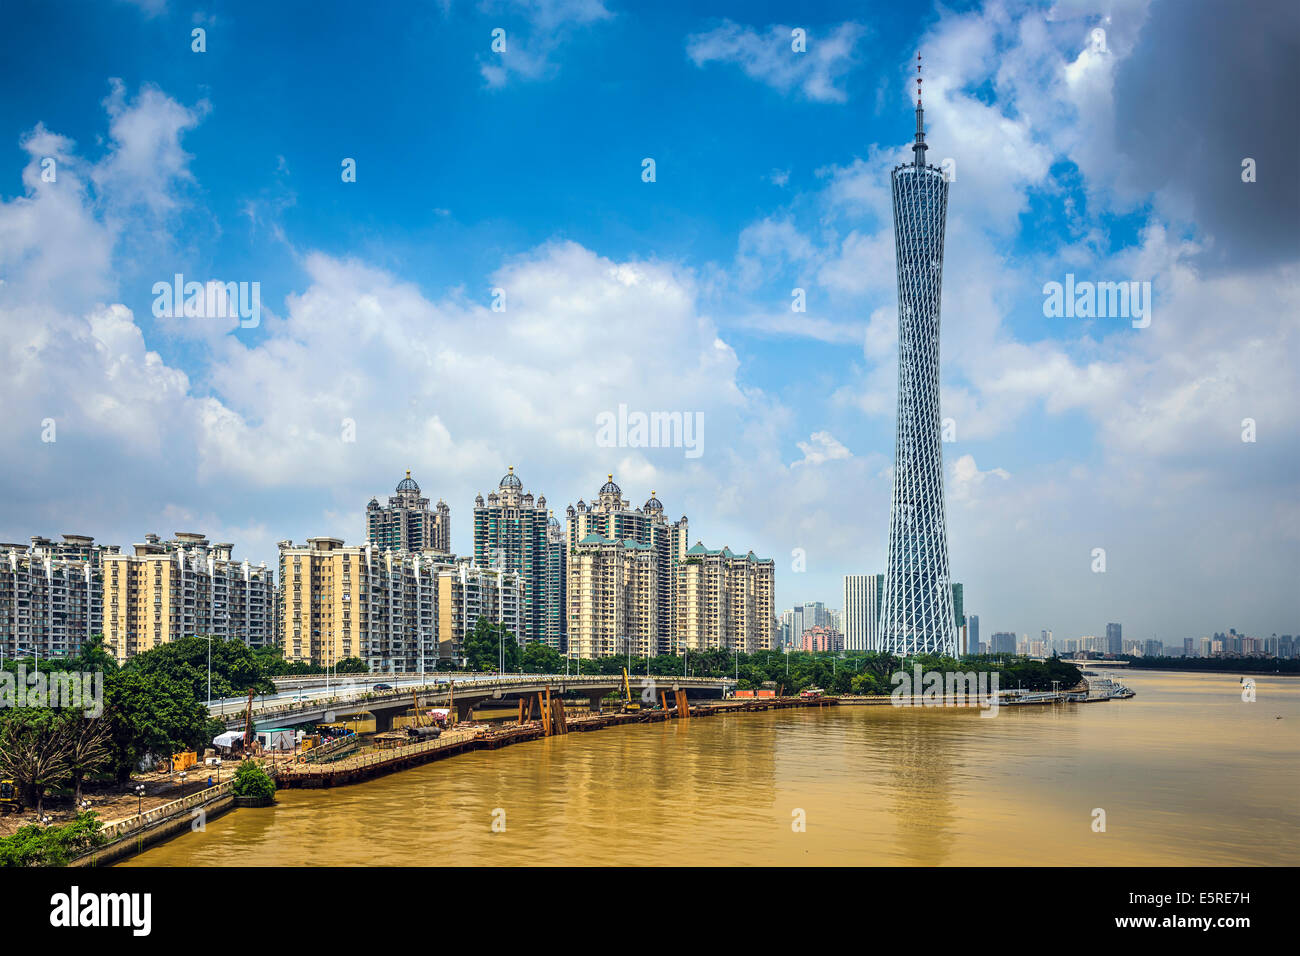 Guangzhou, Chine sur la ville. Photo Stock